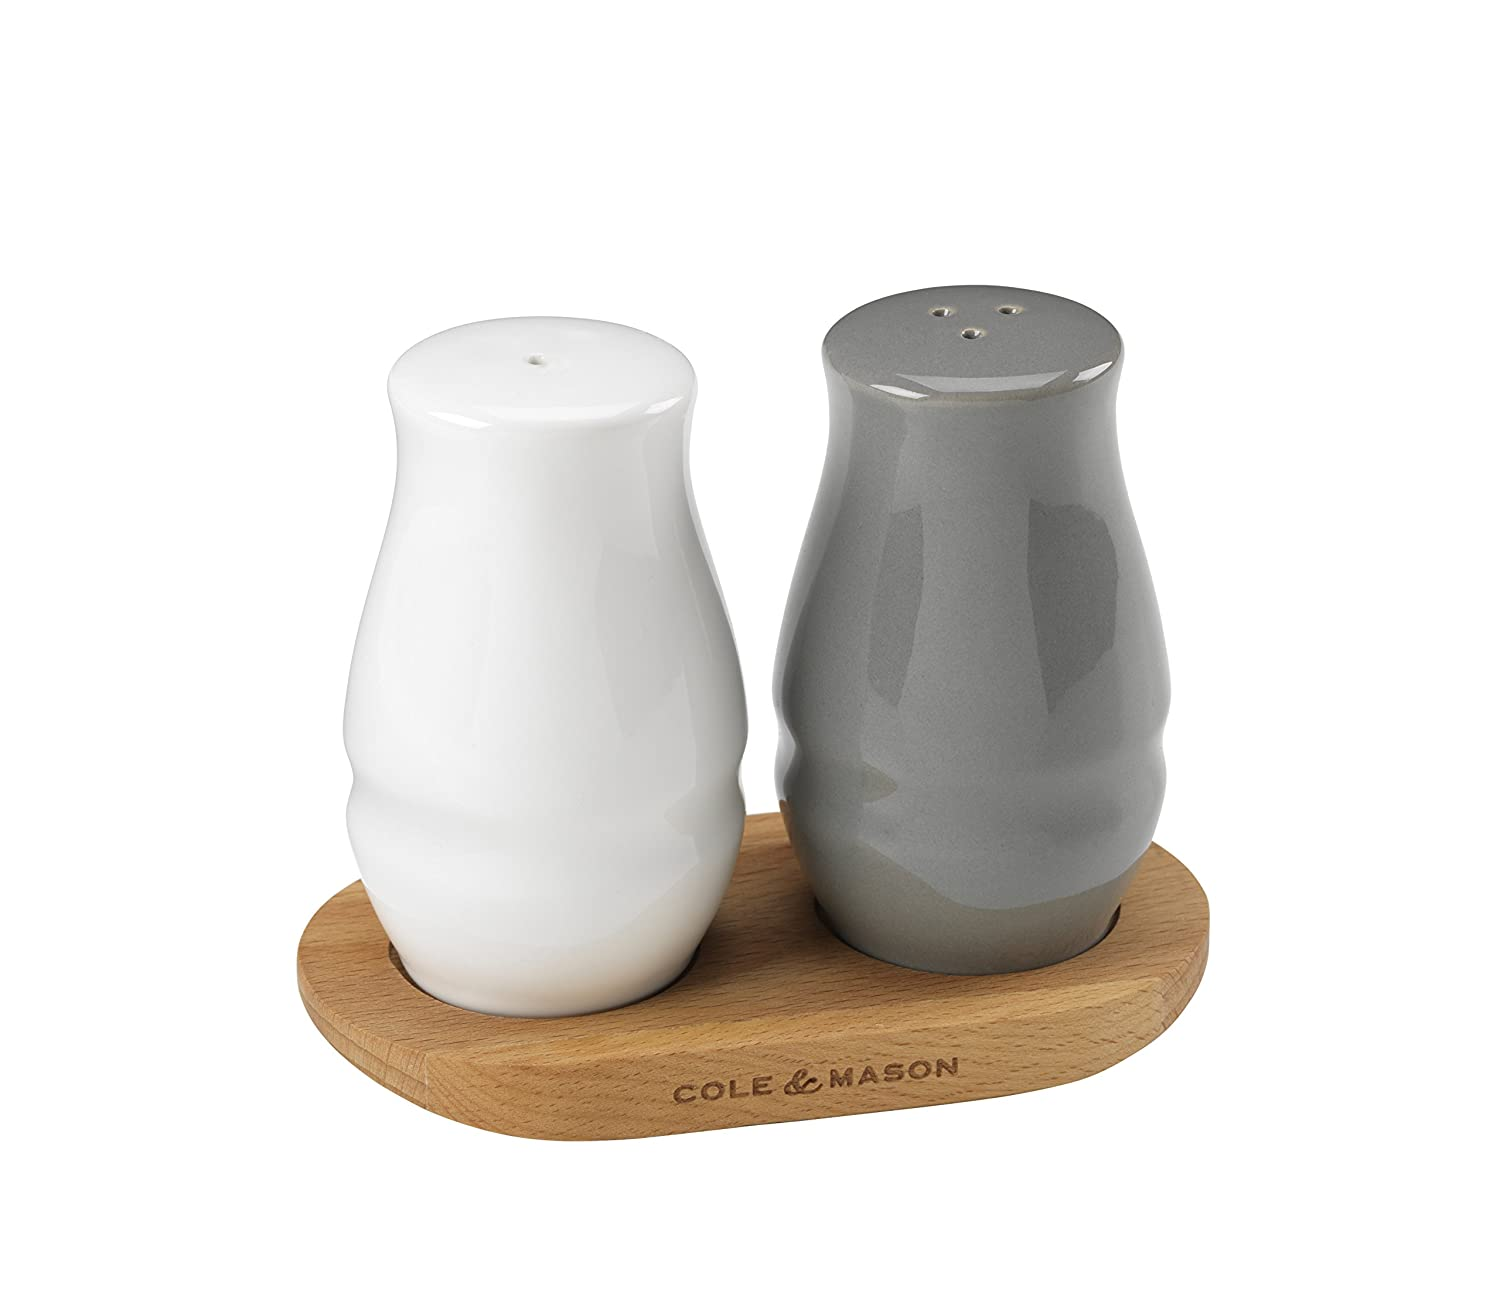 Cole & Mason Salt Pepper Shakers Ceramics White Grey 28 x 28 x 18